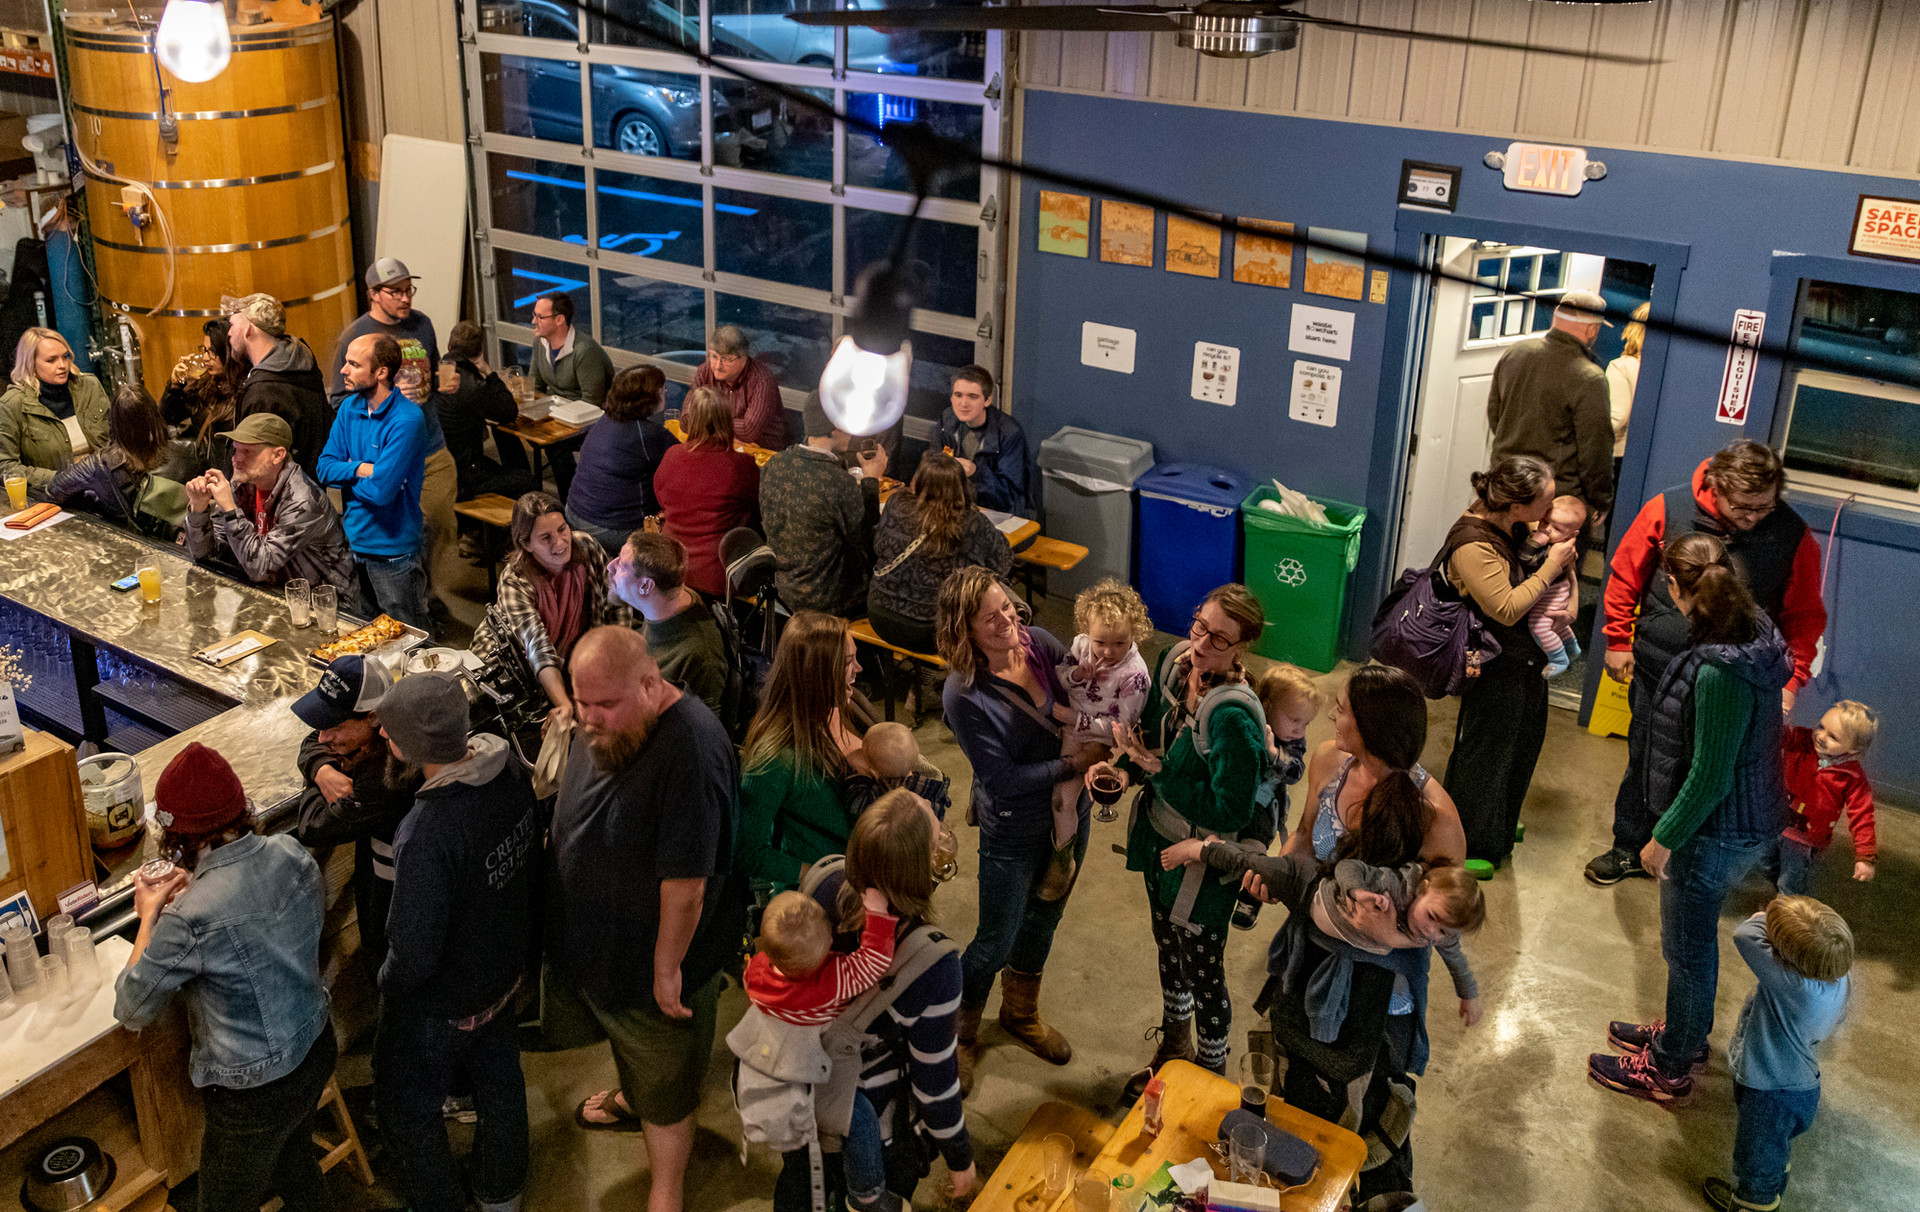 Alumni enjoy Homecoming Weekend while parents enjoy a kids birthday party at Little Fish Brewery on October 20, 2018. Audiences like alumni and parents with kids show how Little Fish caters to a variety of people.